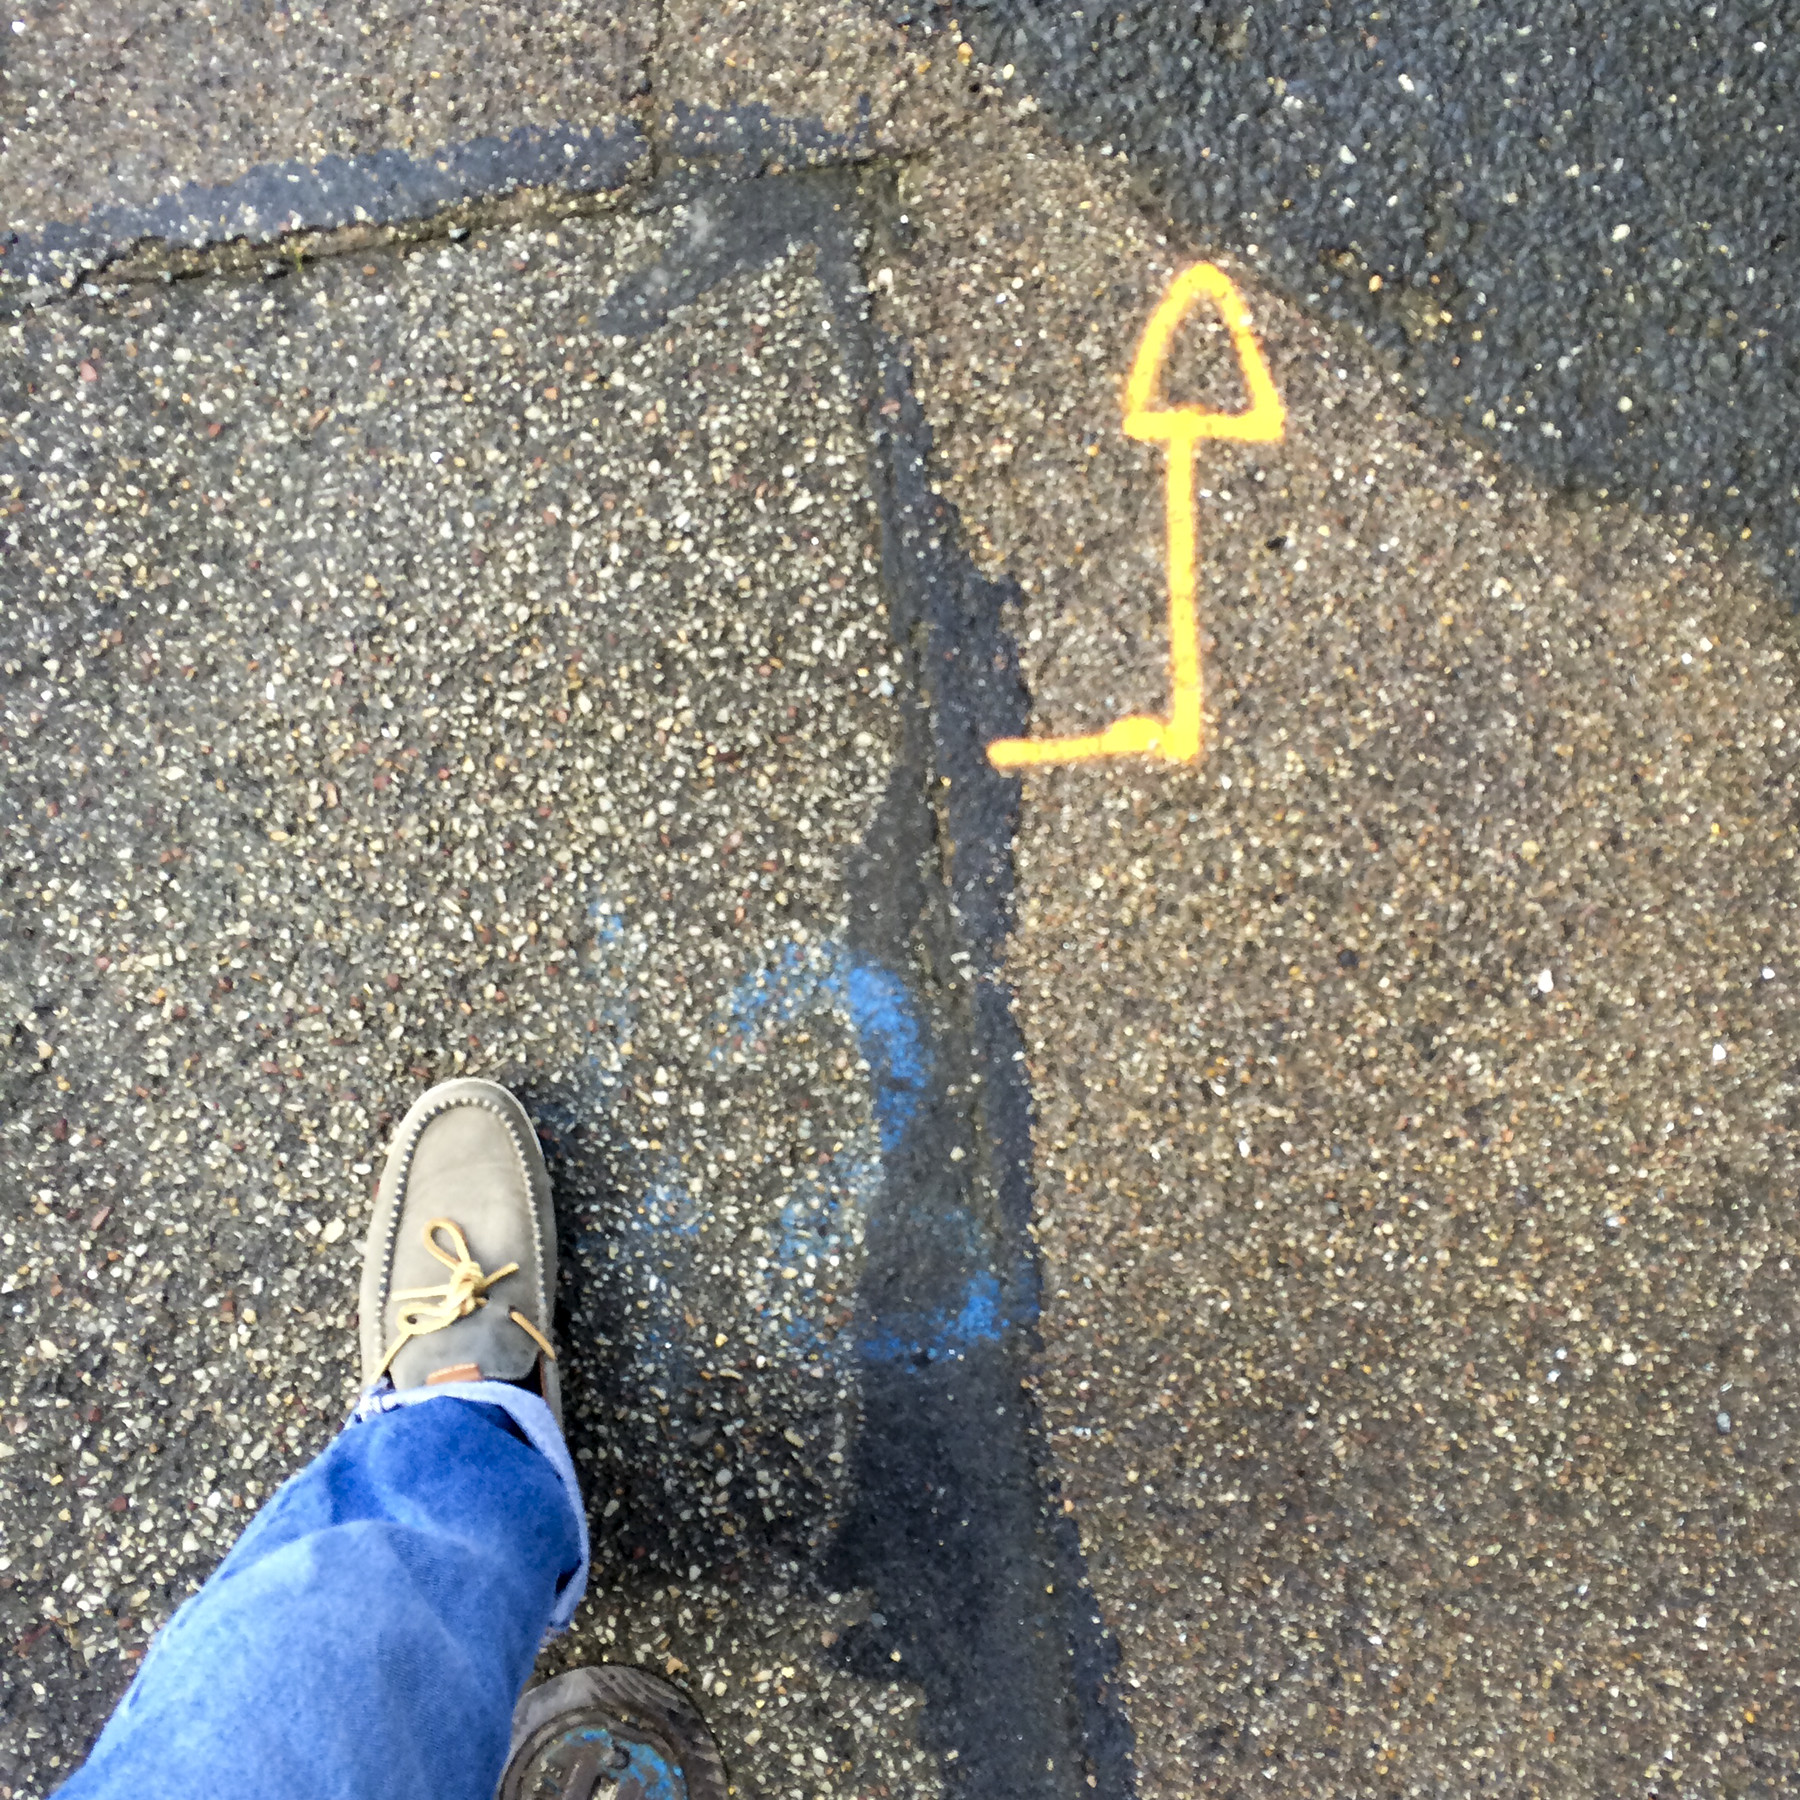 1st of 6 placeholder images: yellow arrow spraypainted on pavement, photograph's foot lower left